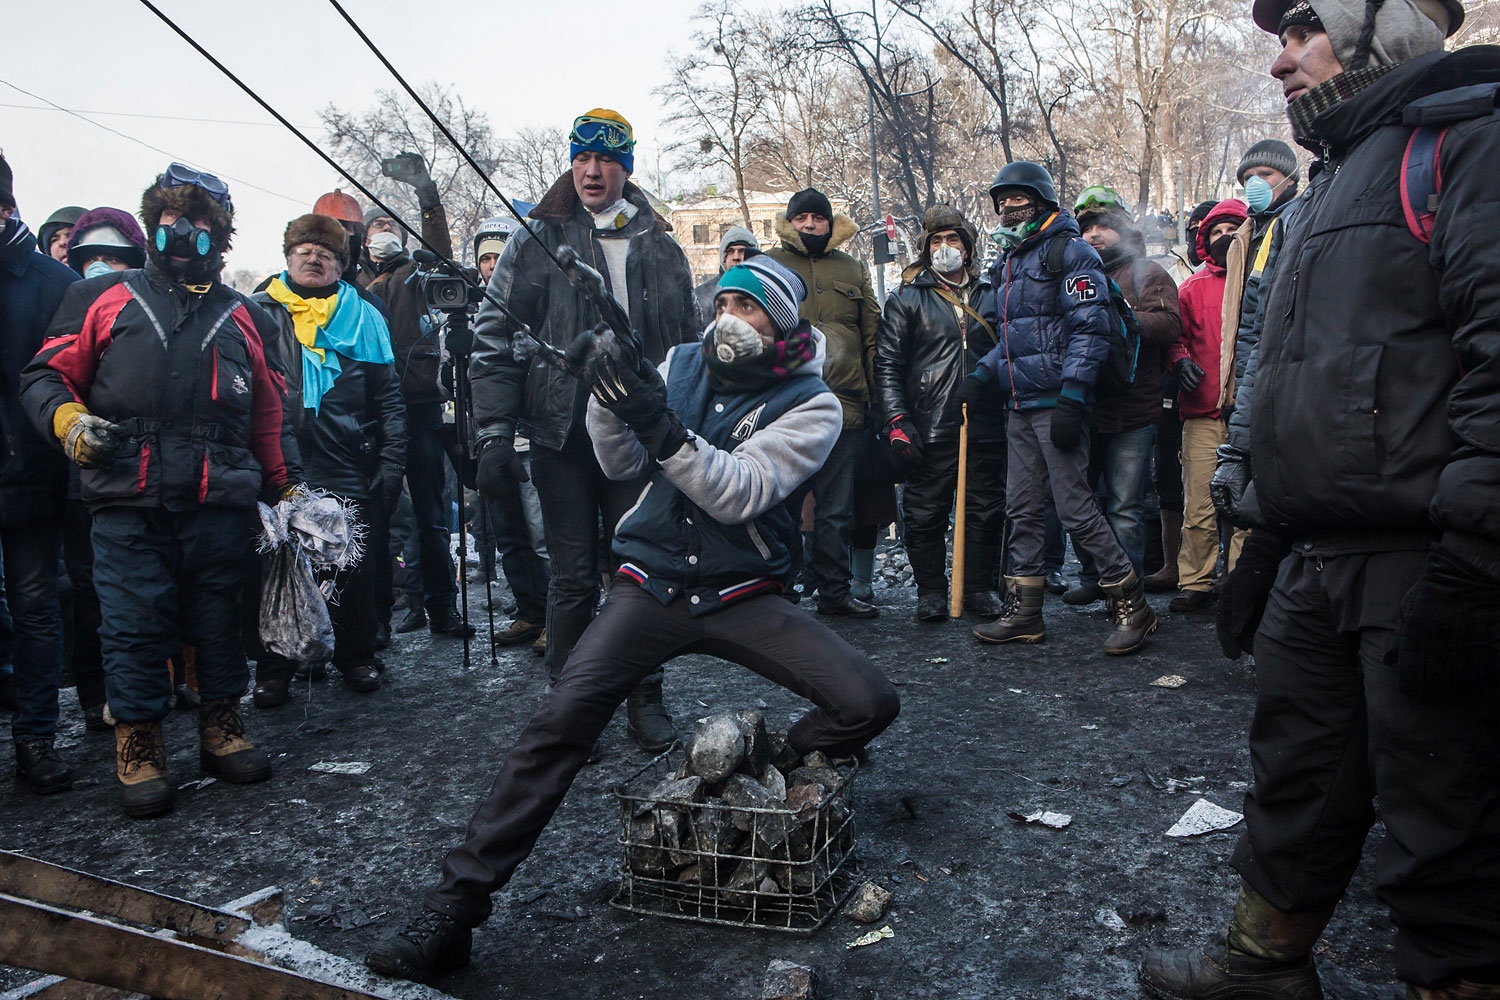 An anti-government protester uses a large sling shot during clashes with police on Hrushevskoho Street near Dynamo stadium on Jan. 25, 2014 in Kiev.